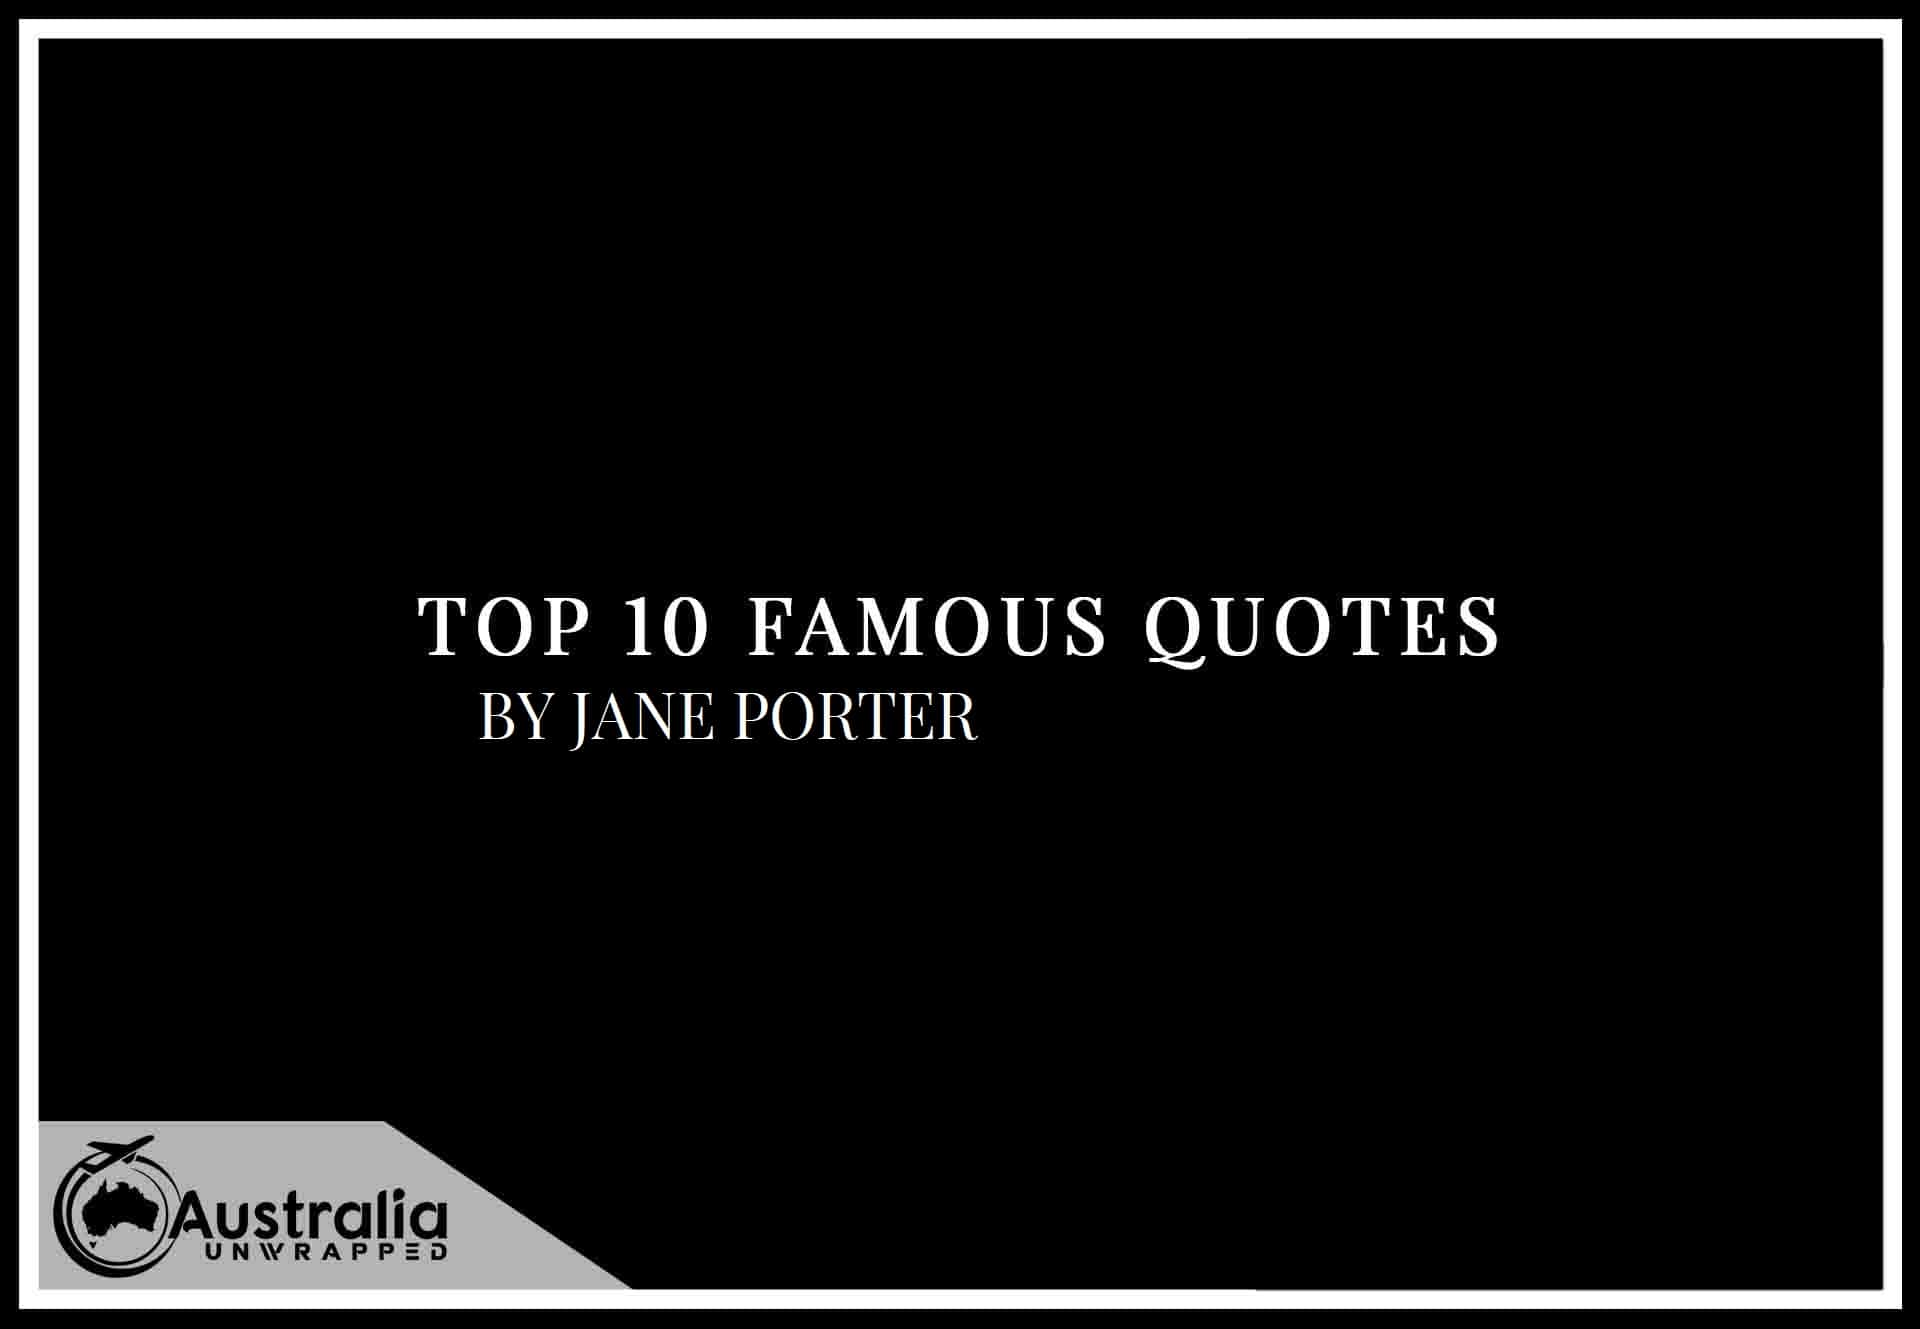 Top 10 Famous Quotes by Author Jane Porter